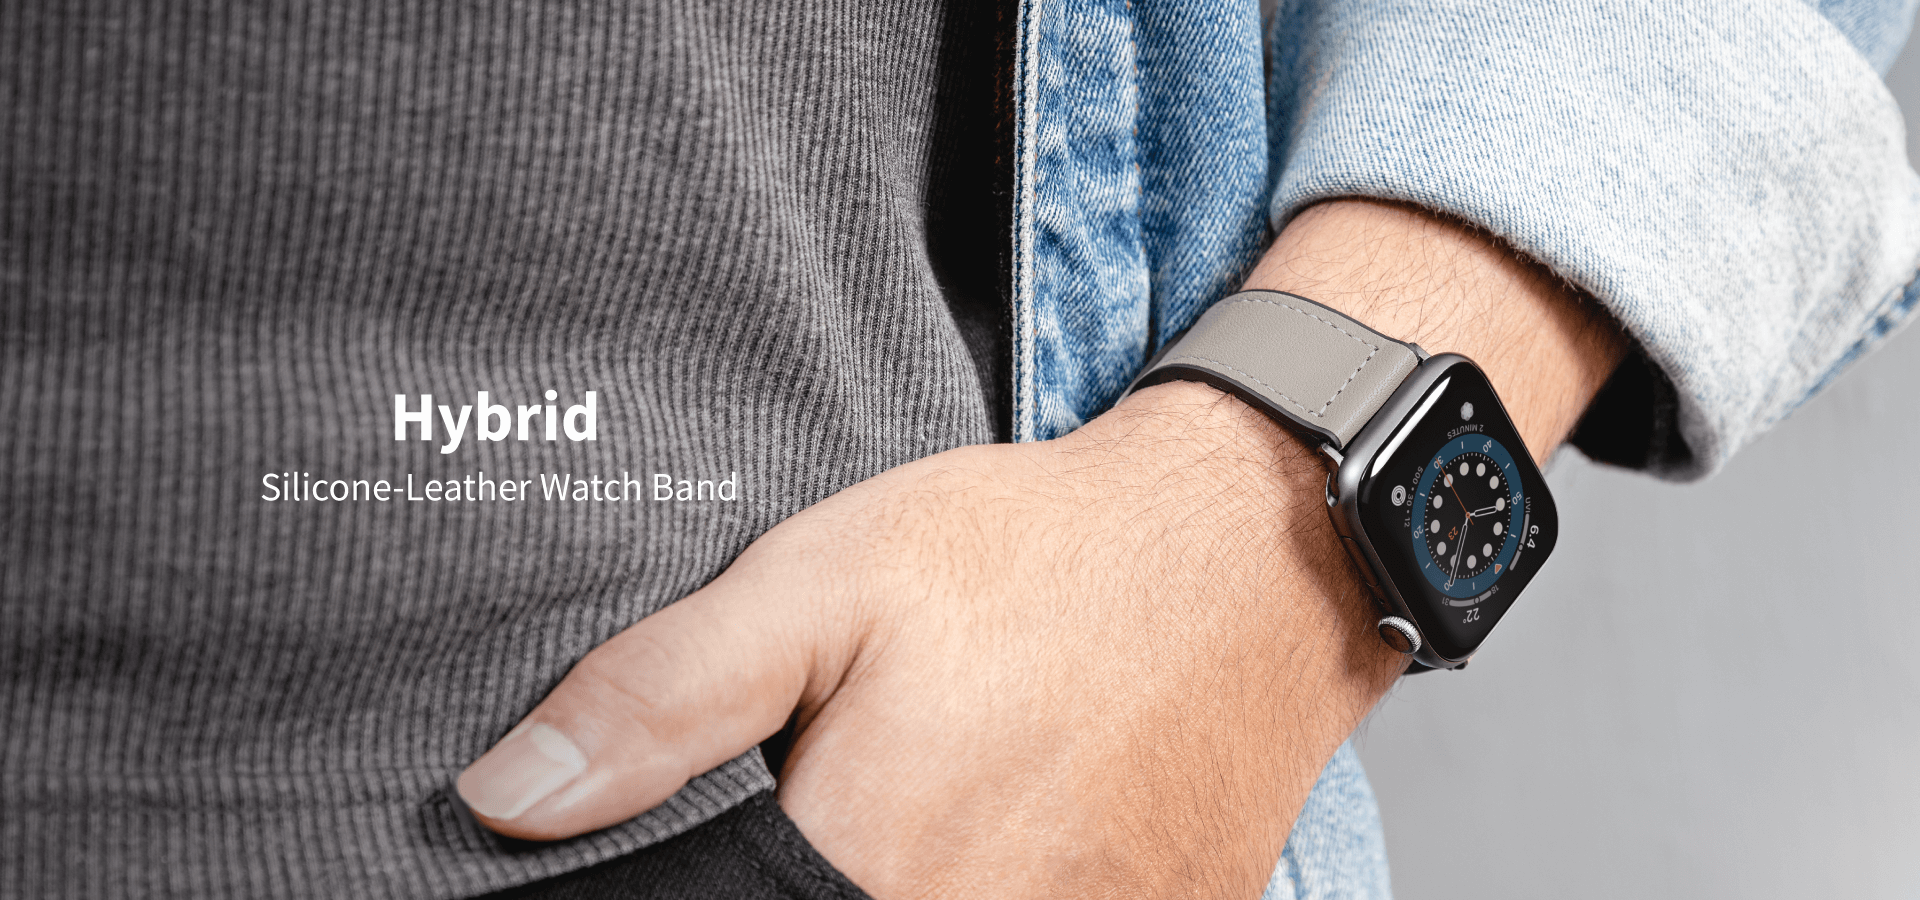 Hybrid Silicone-Leather Watch Band